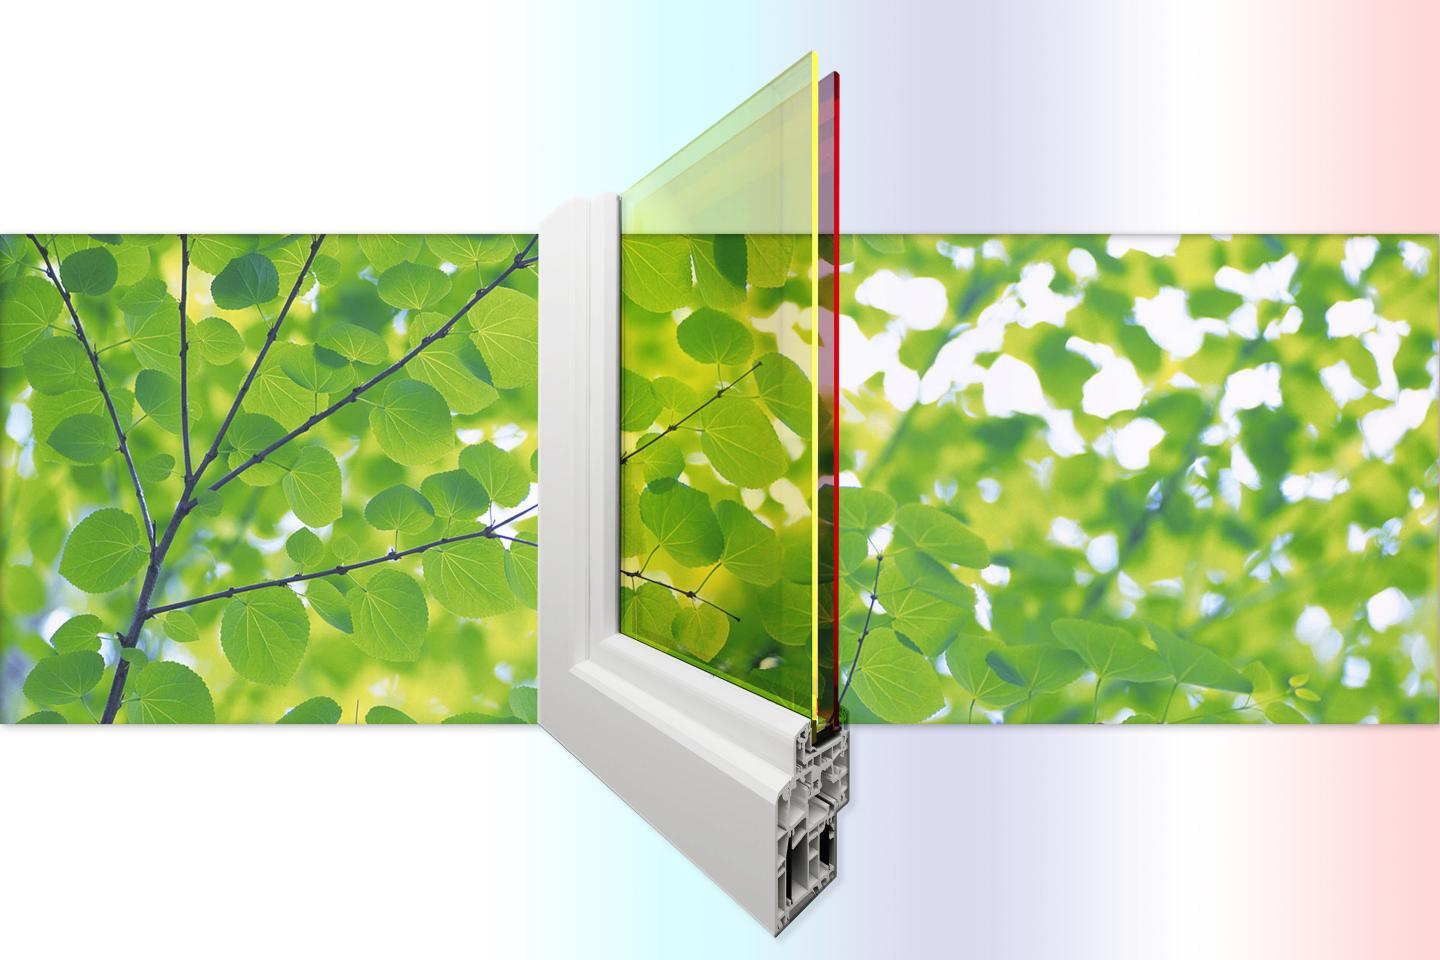 Researchers at Los Alamos National Laboraotry are creating double-pane solar windows that generate electricity with greater efficiency and also create shading and insulation. Source: Los Alamos National Laboratory